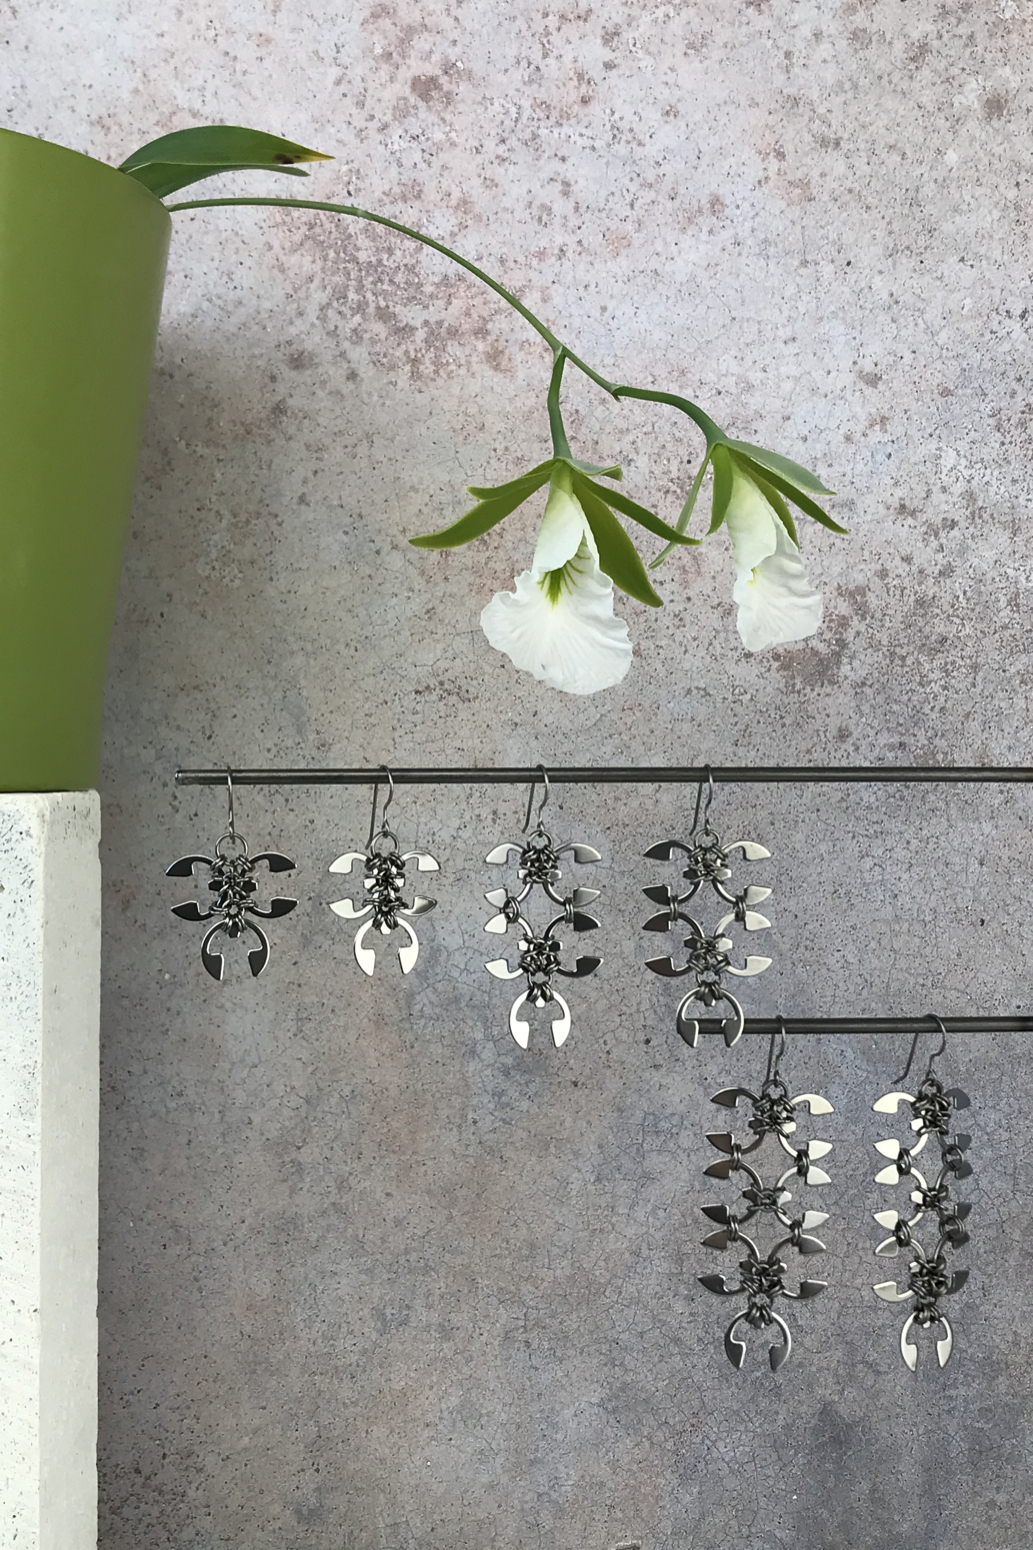 Wraptillion's Ivy Earrings, Short Wisteria Earrings, and Long Wisteria Earrings with blooming Encyclia mariae in front of a textured gray wall.